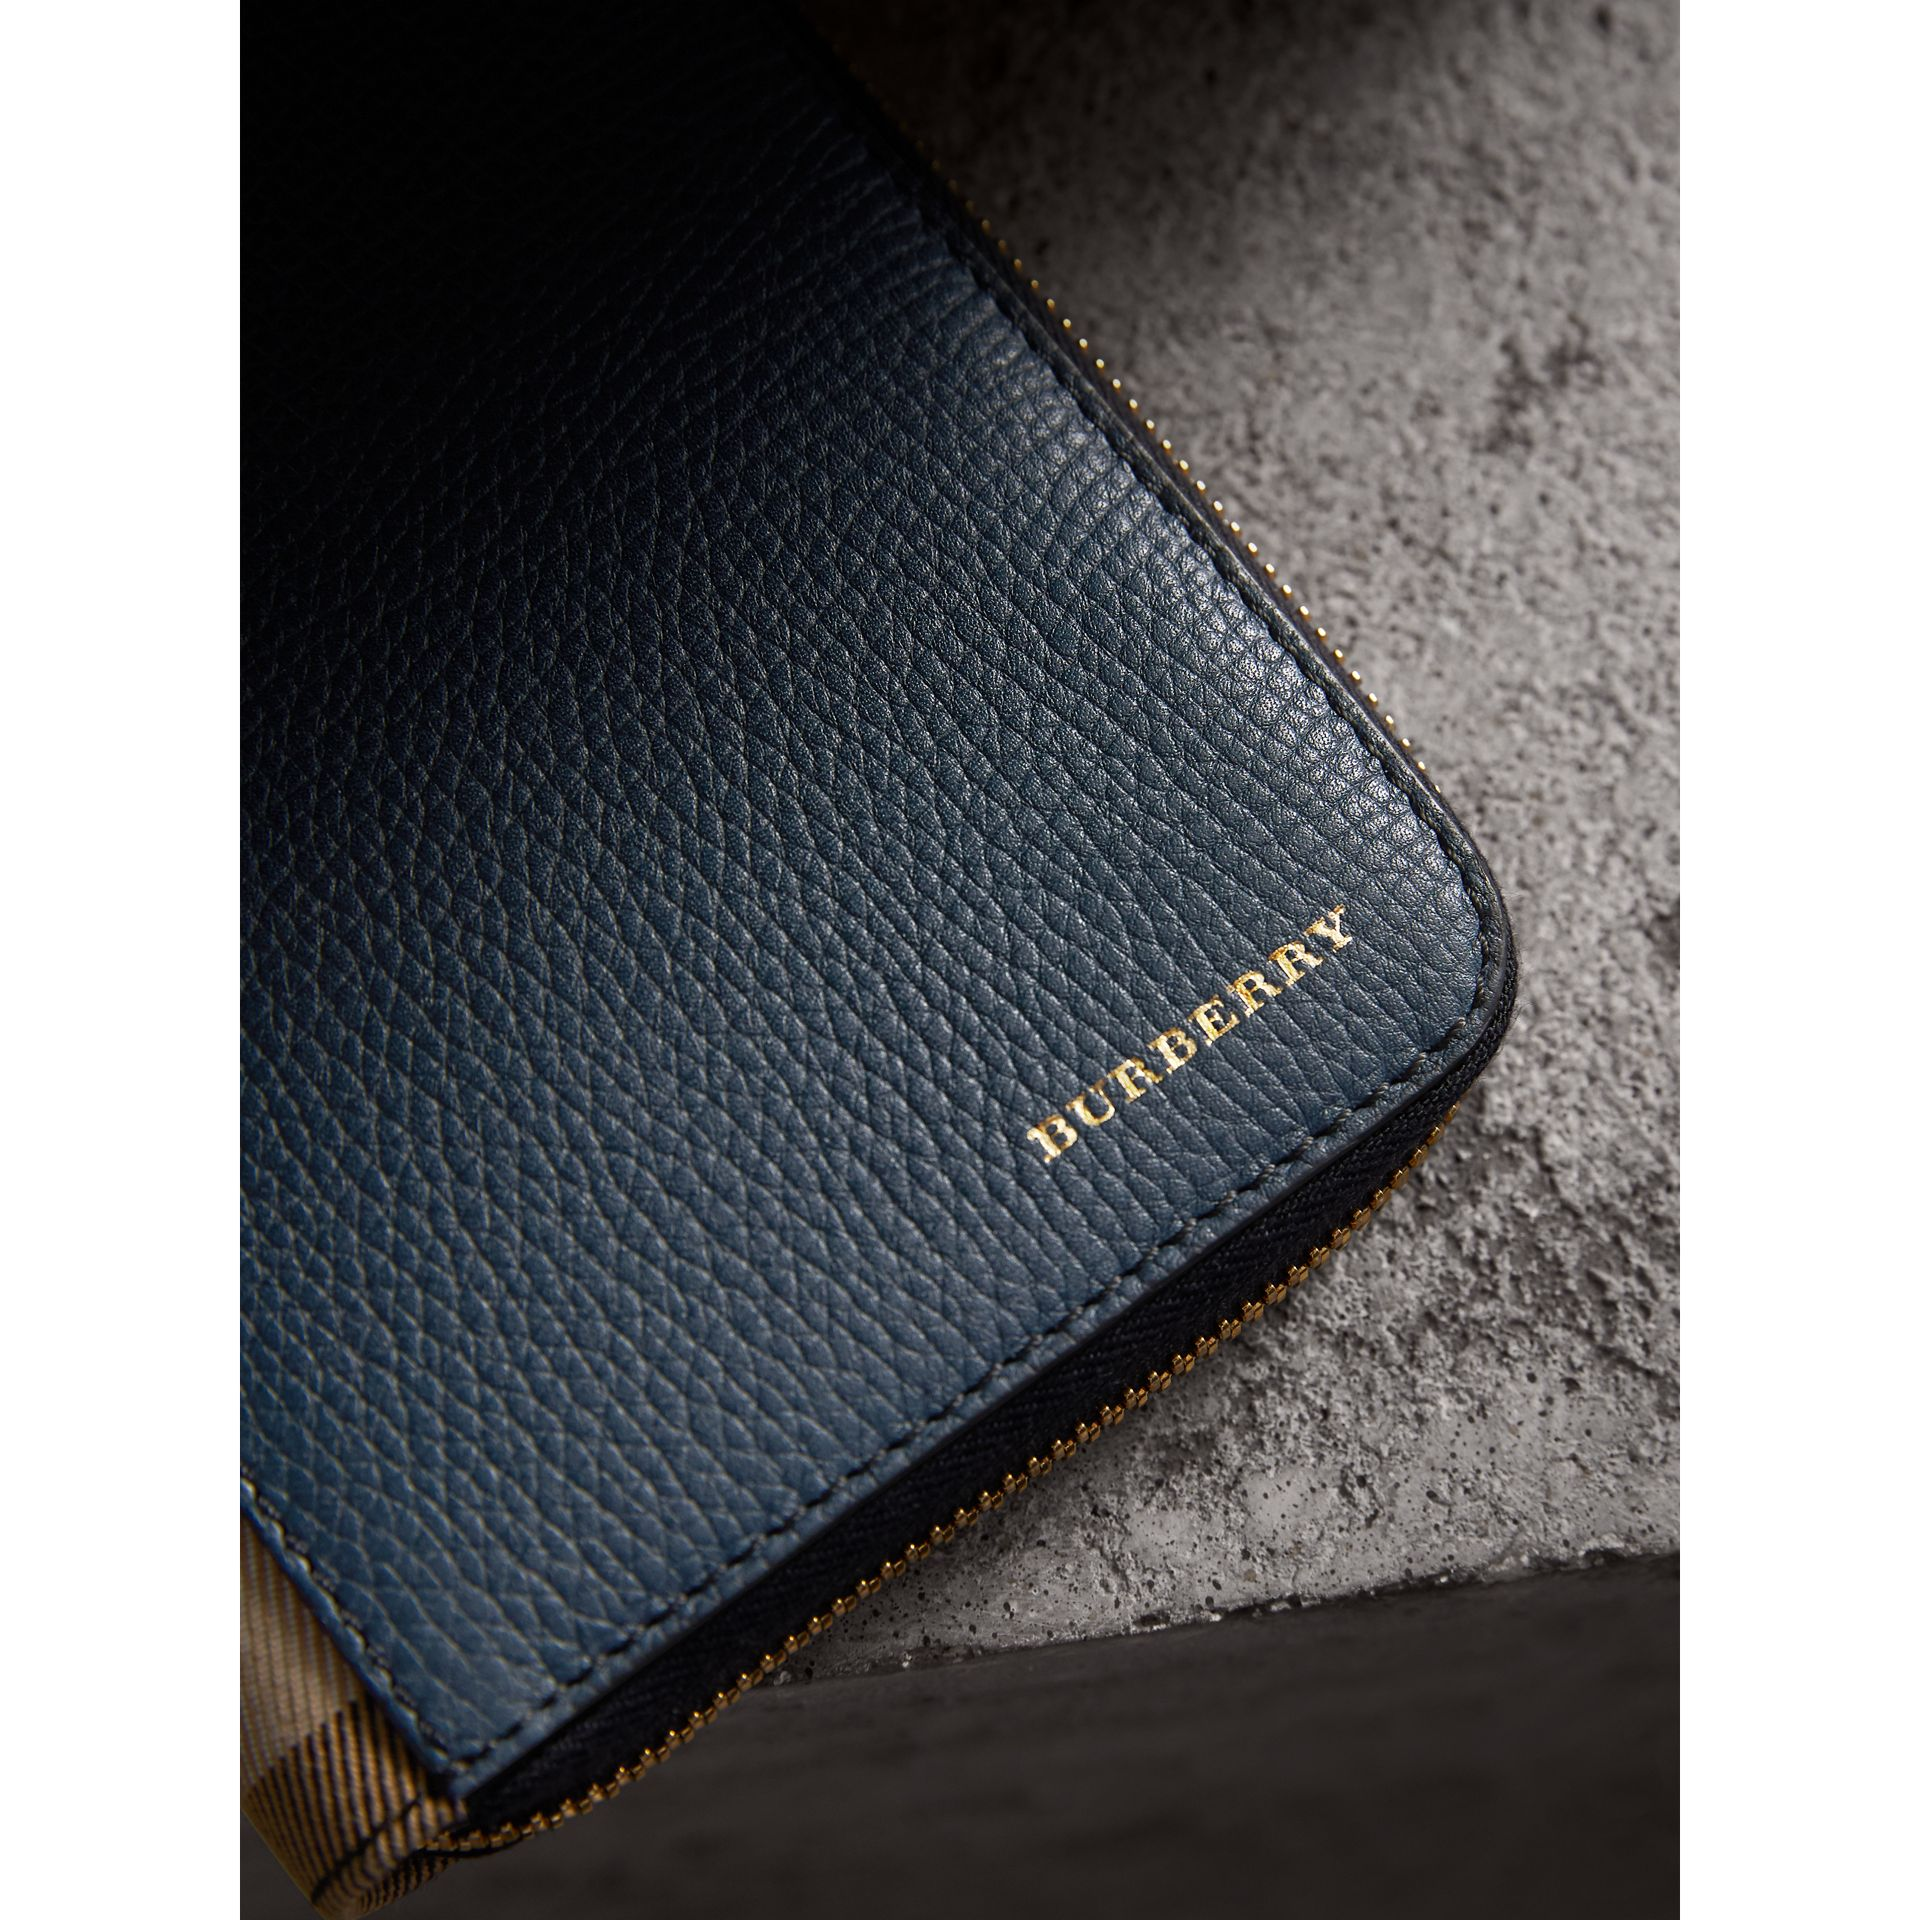 House Check and Grainy Leather Ziparound Wallet in Storm Blue | Burberry - gallery image 5